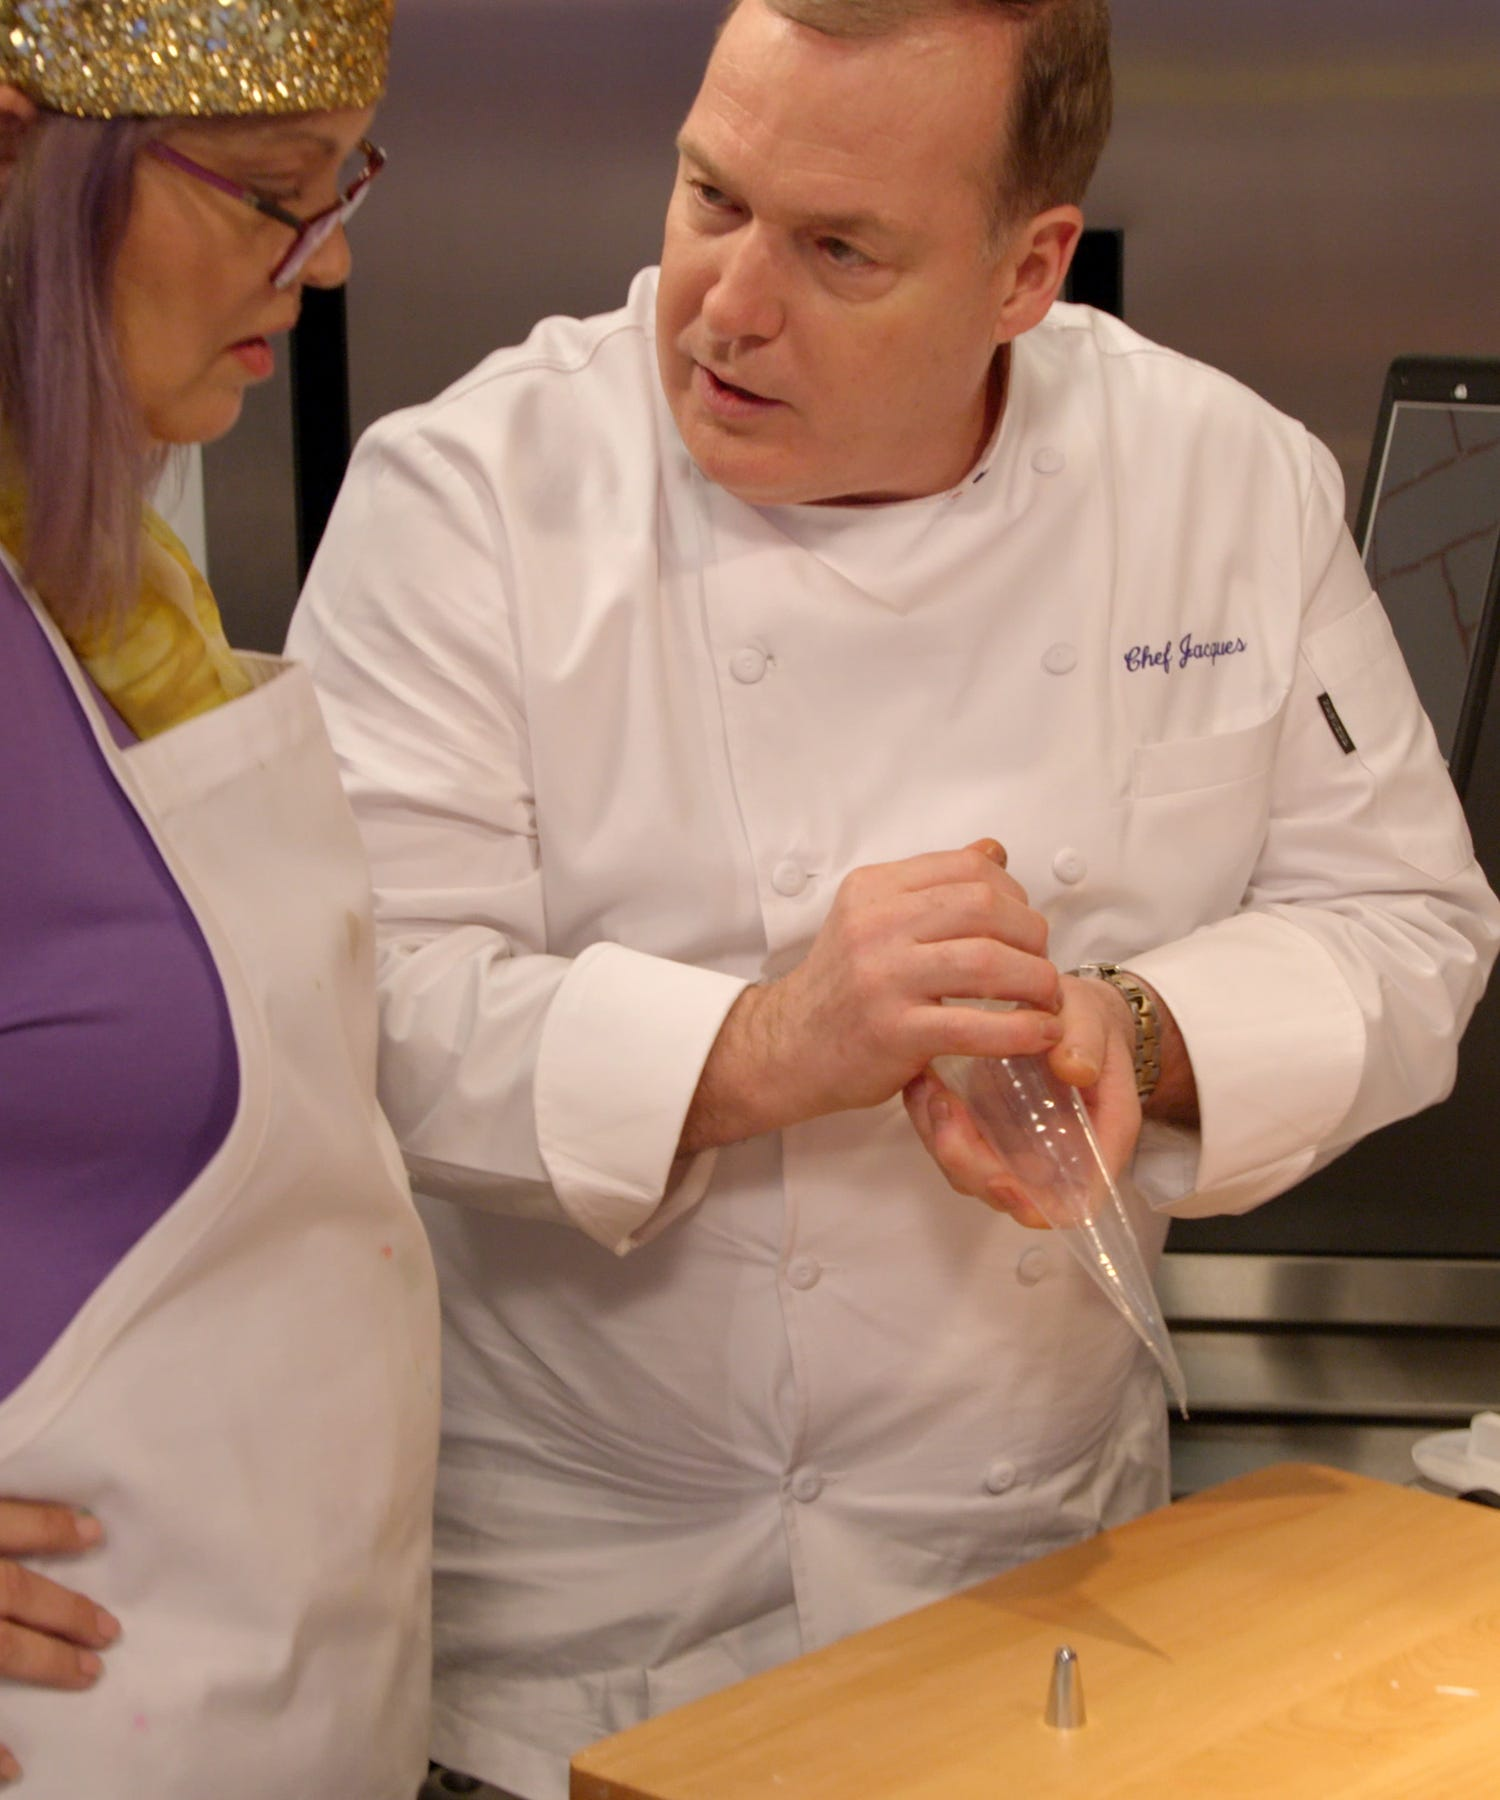 How To Melt Chocolate According to Nailed It!'s Jacques Torres